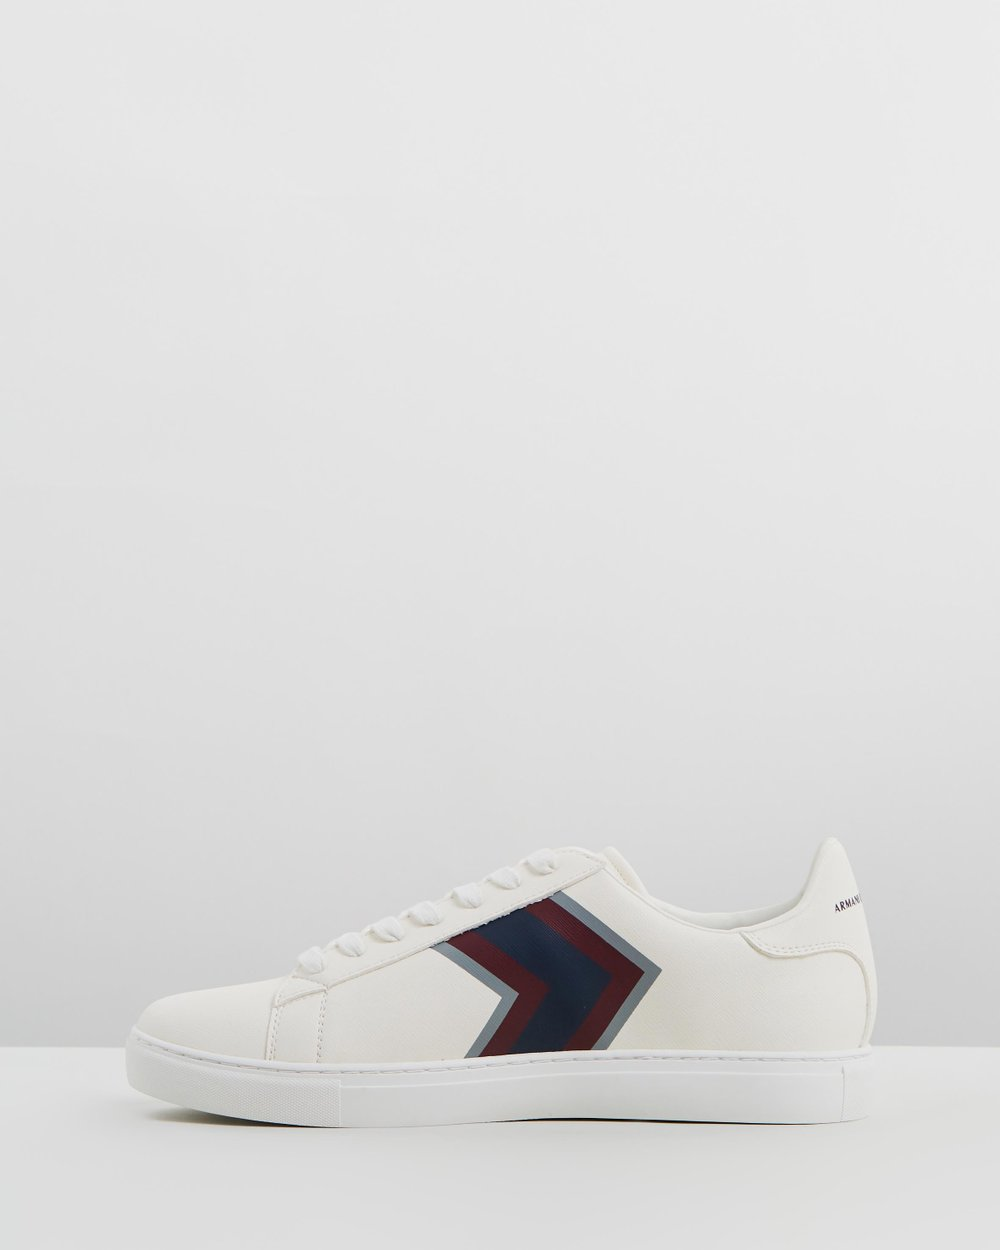 Chevron Lace Up Sneakers by Armani Exchange Online   THE ICONIC   Australia 627c9a6556f